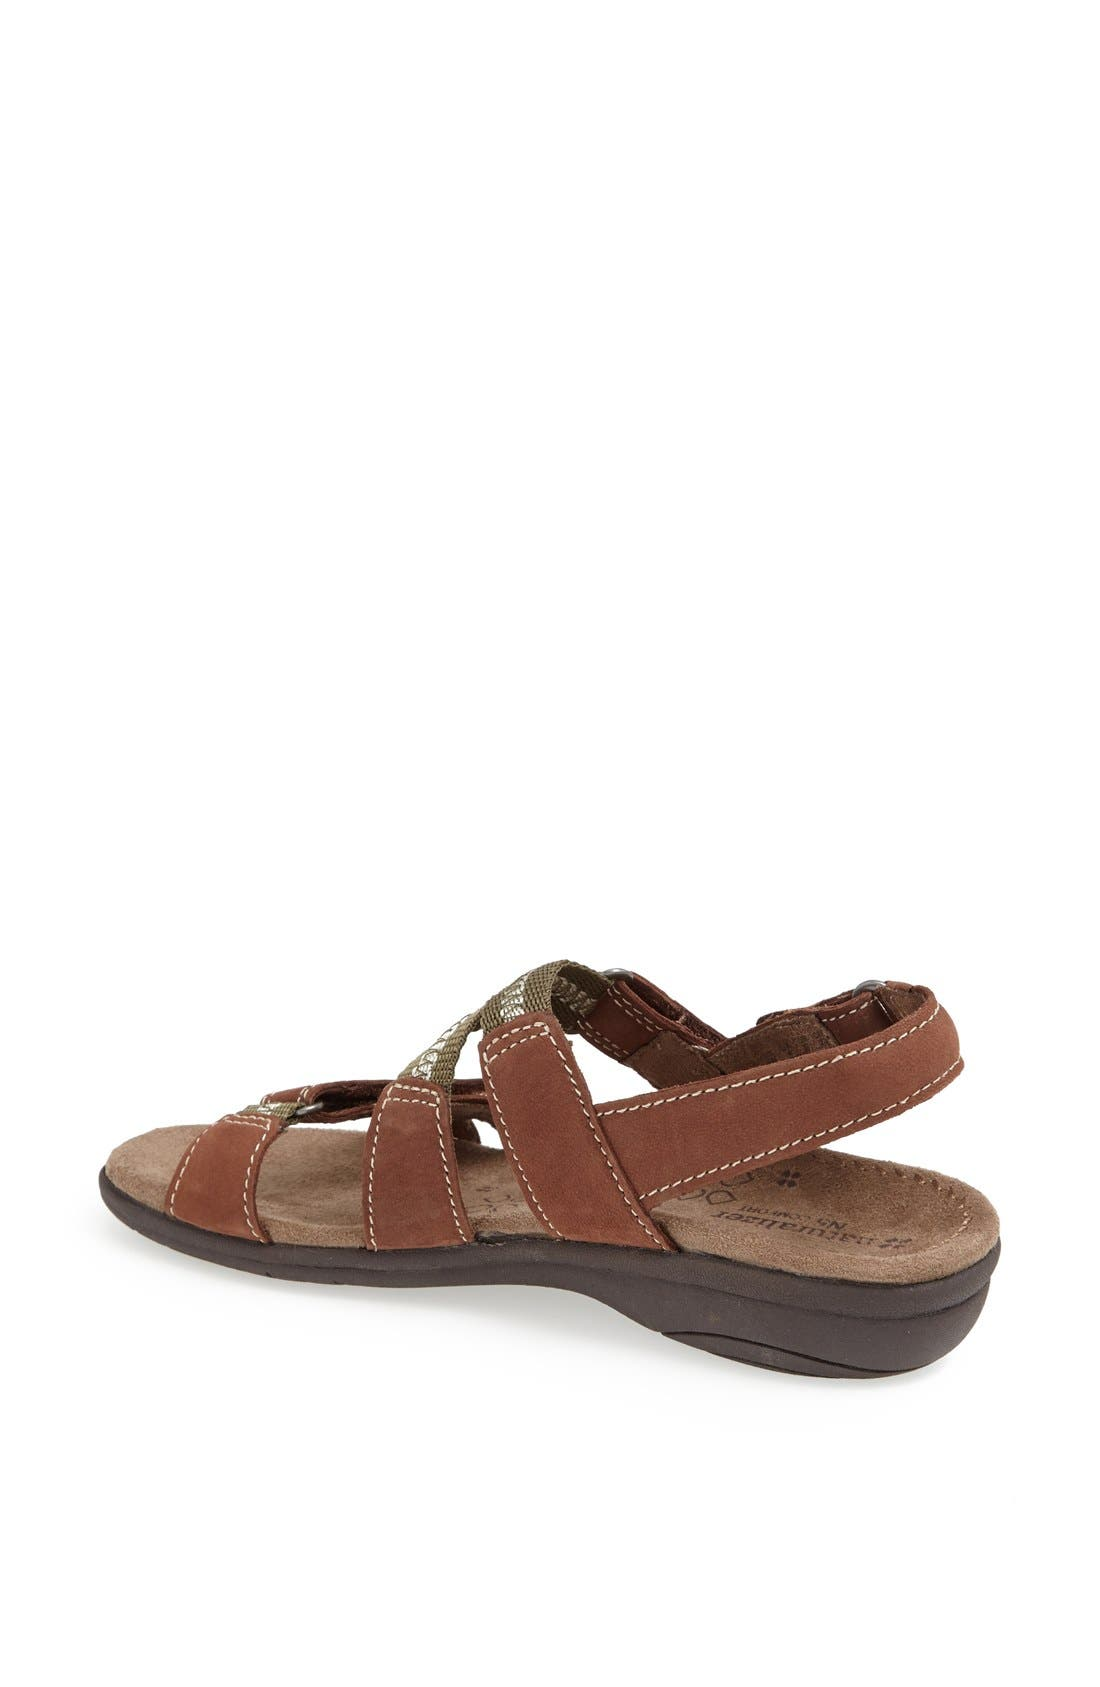 Alternate Image 2  - Naturalizer 'Valero' Sandal